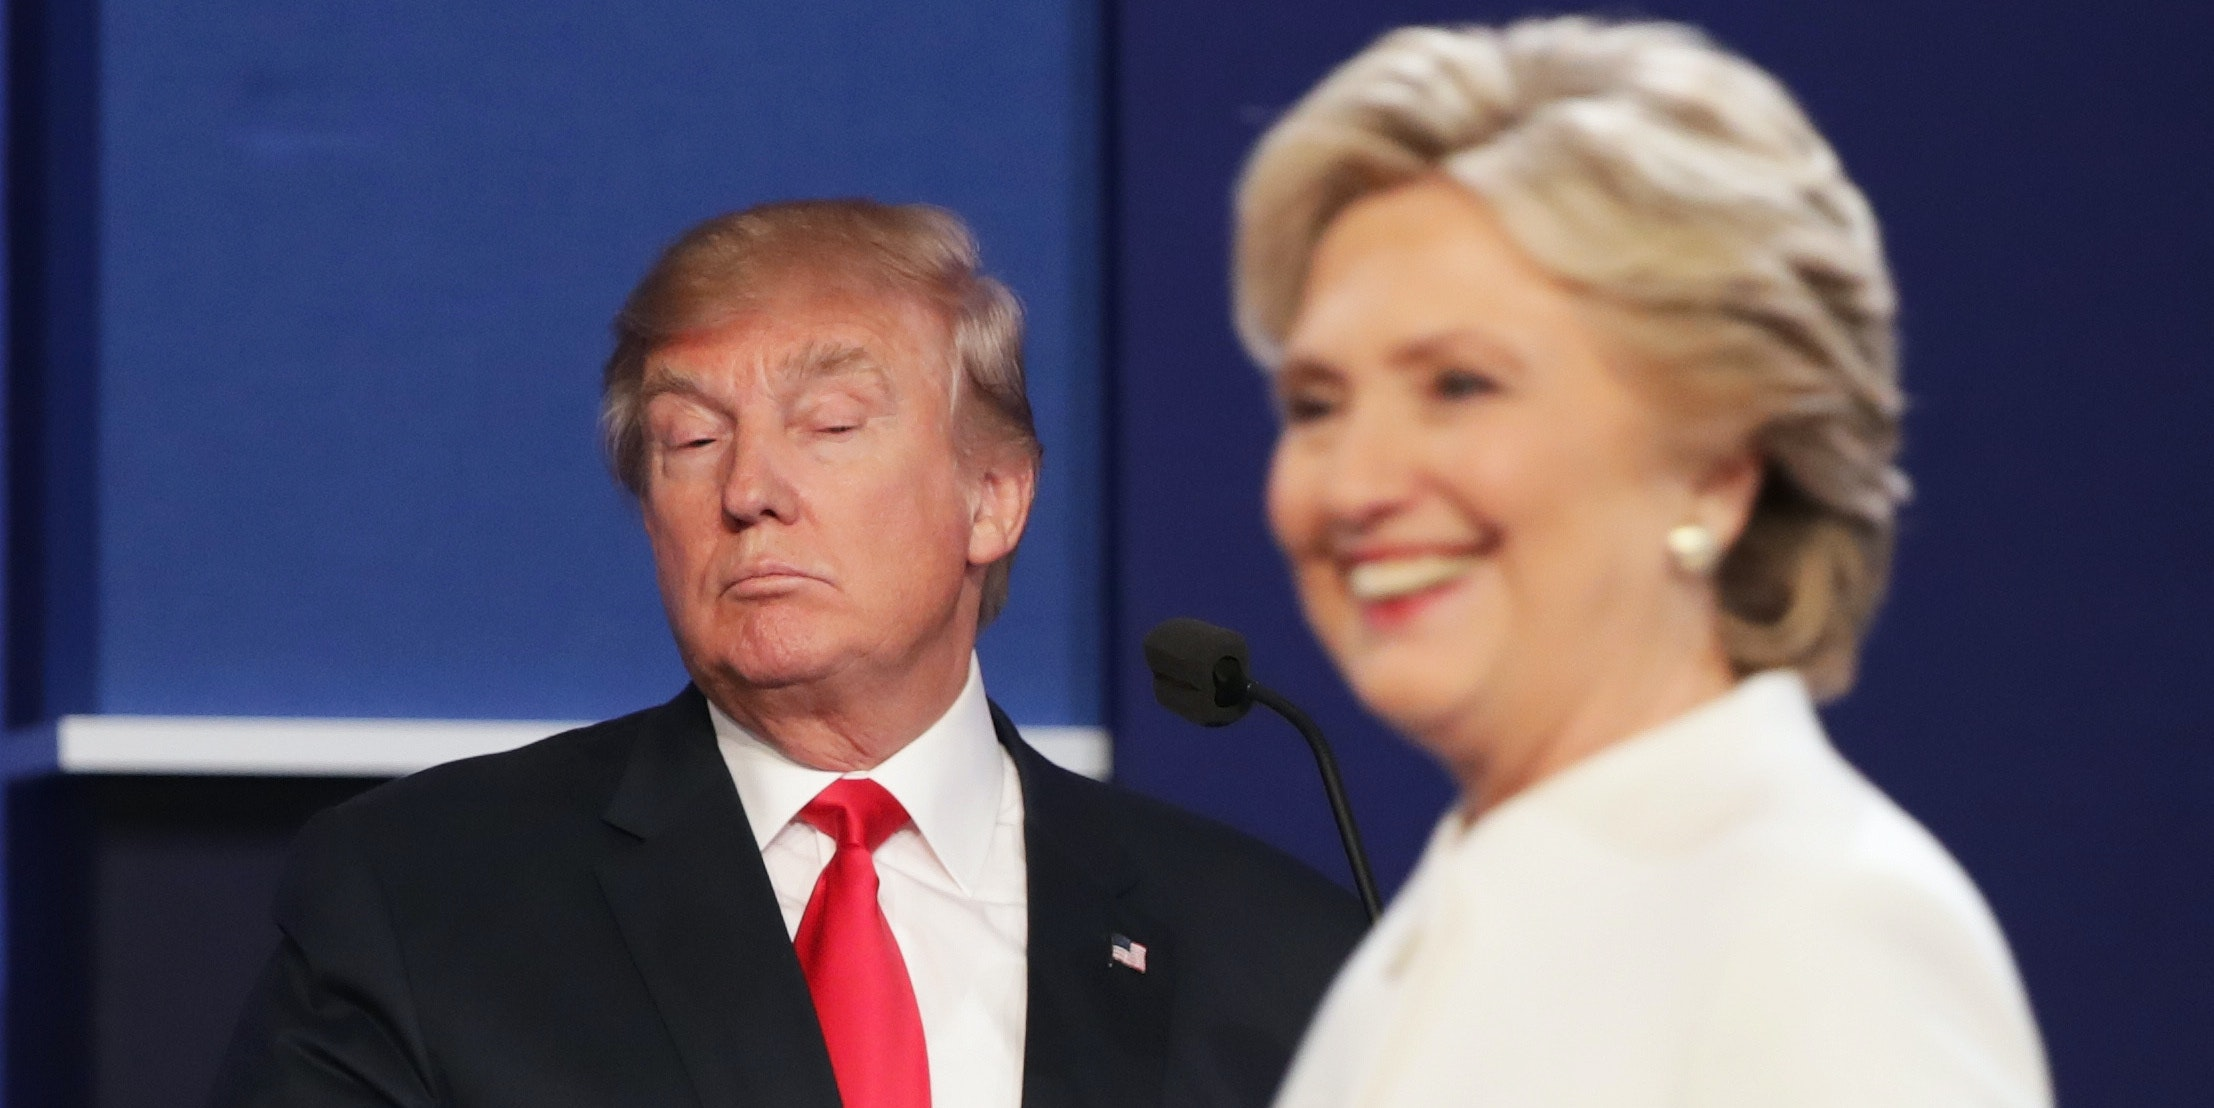 Democratic presidential nominee former Secretary of State Hillary Clinton walks off stage as Republican presidential nominee Donald Trump looks on during the third U.S. presidential debate at the Thomas & Mack Center on October 19, 2016 in Las Vegas, Nevada. Tonight is the final debate ahead of Election Day on November 8.